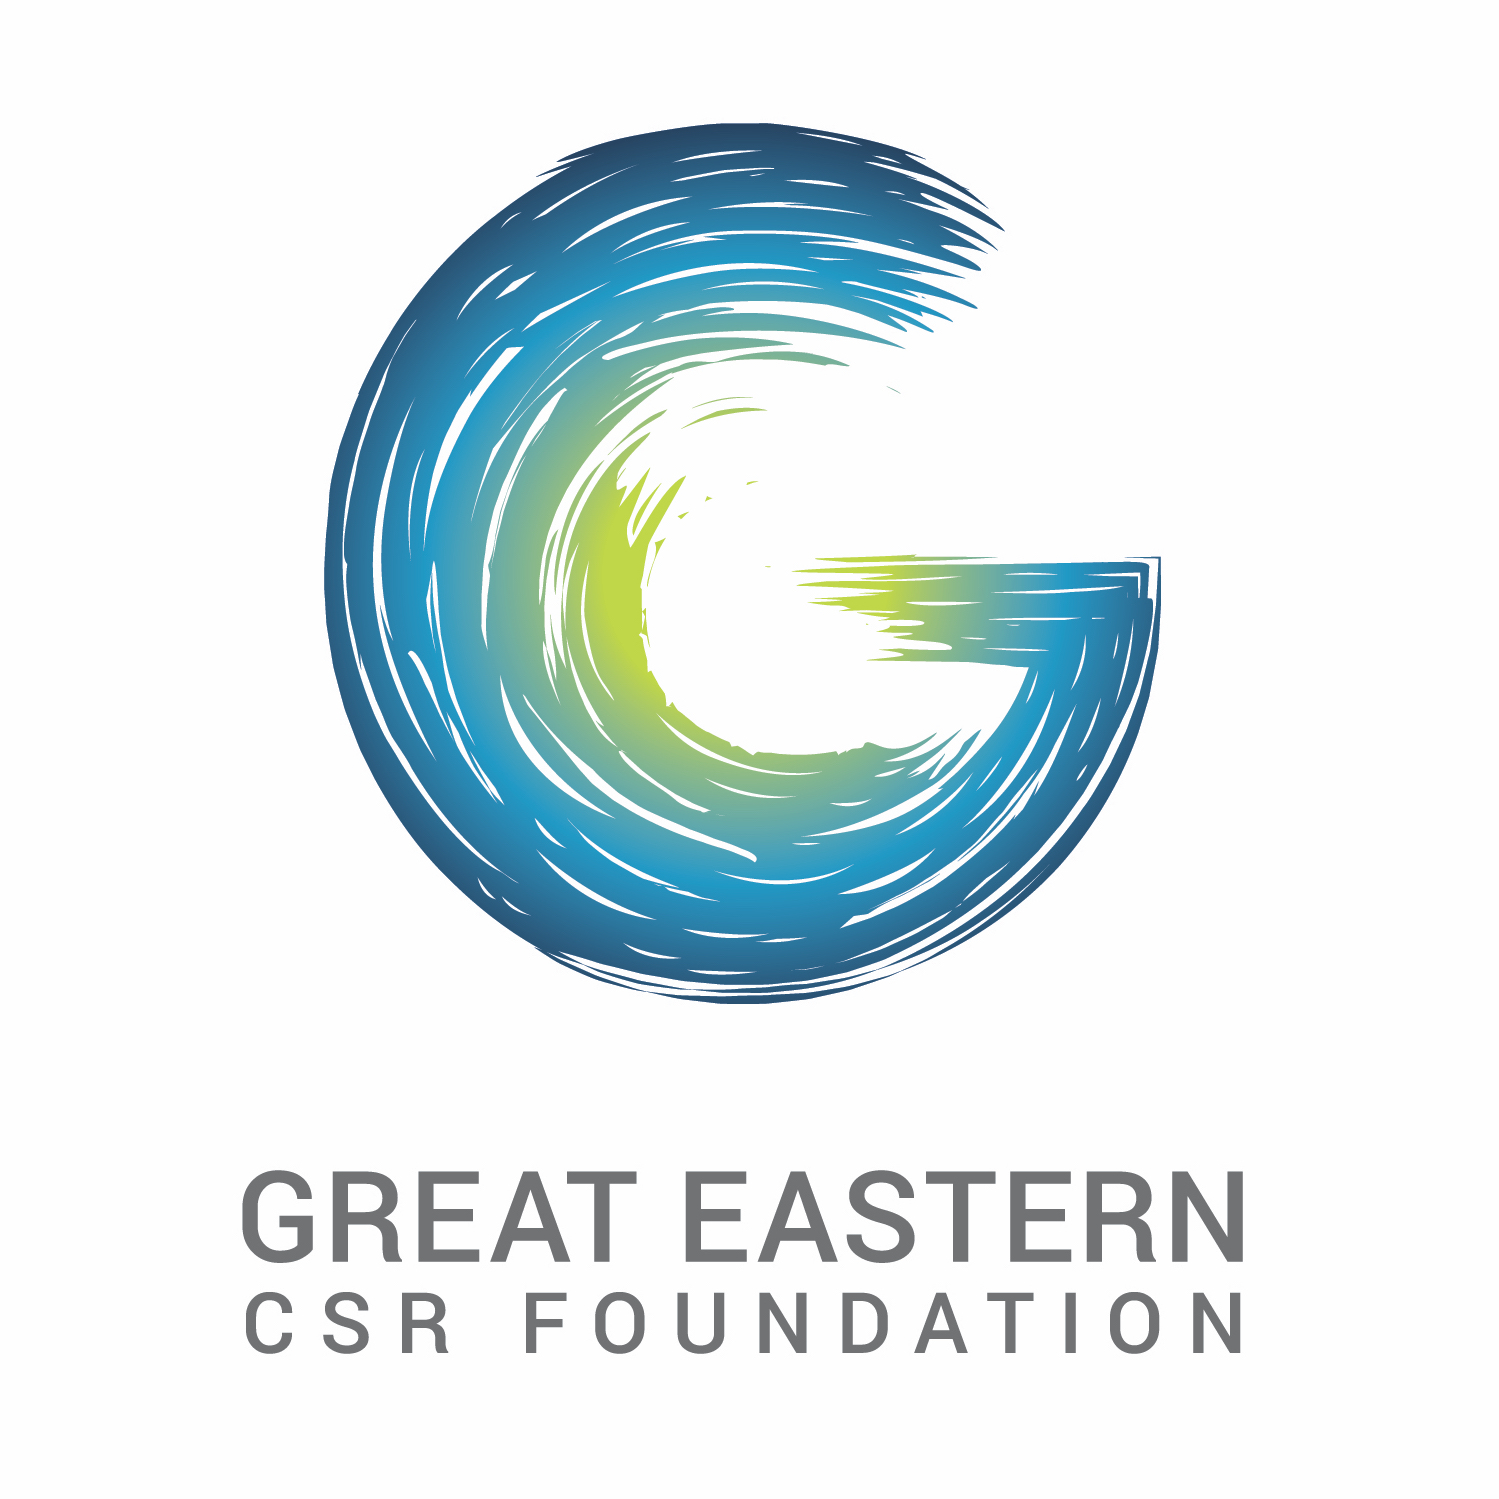 Great Eastern CSR Foundation